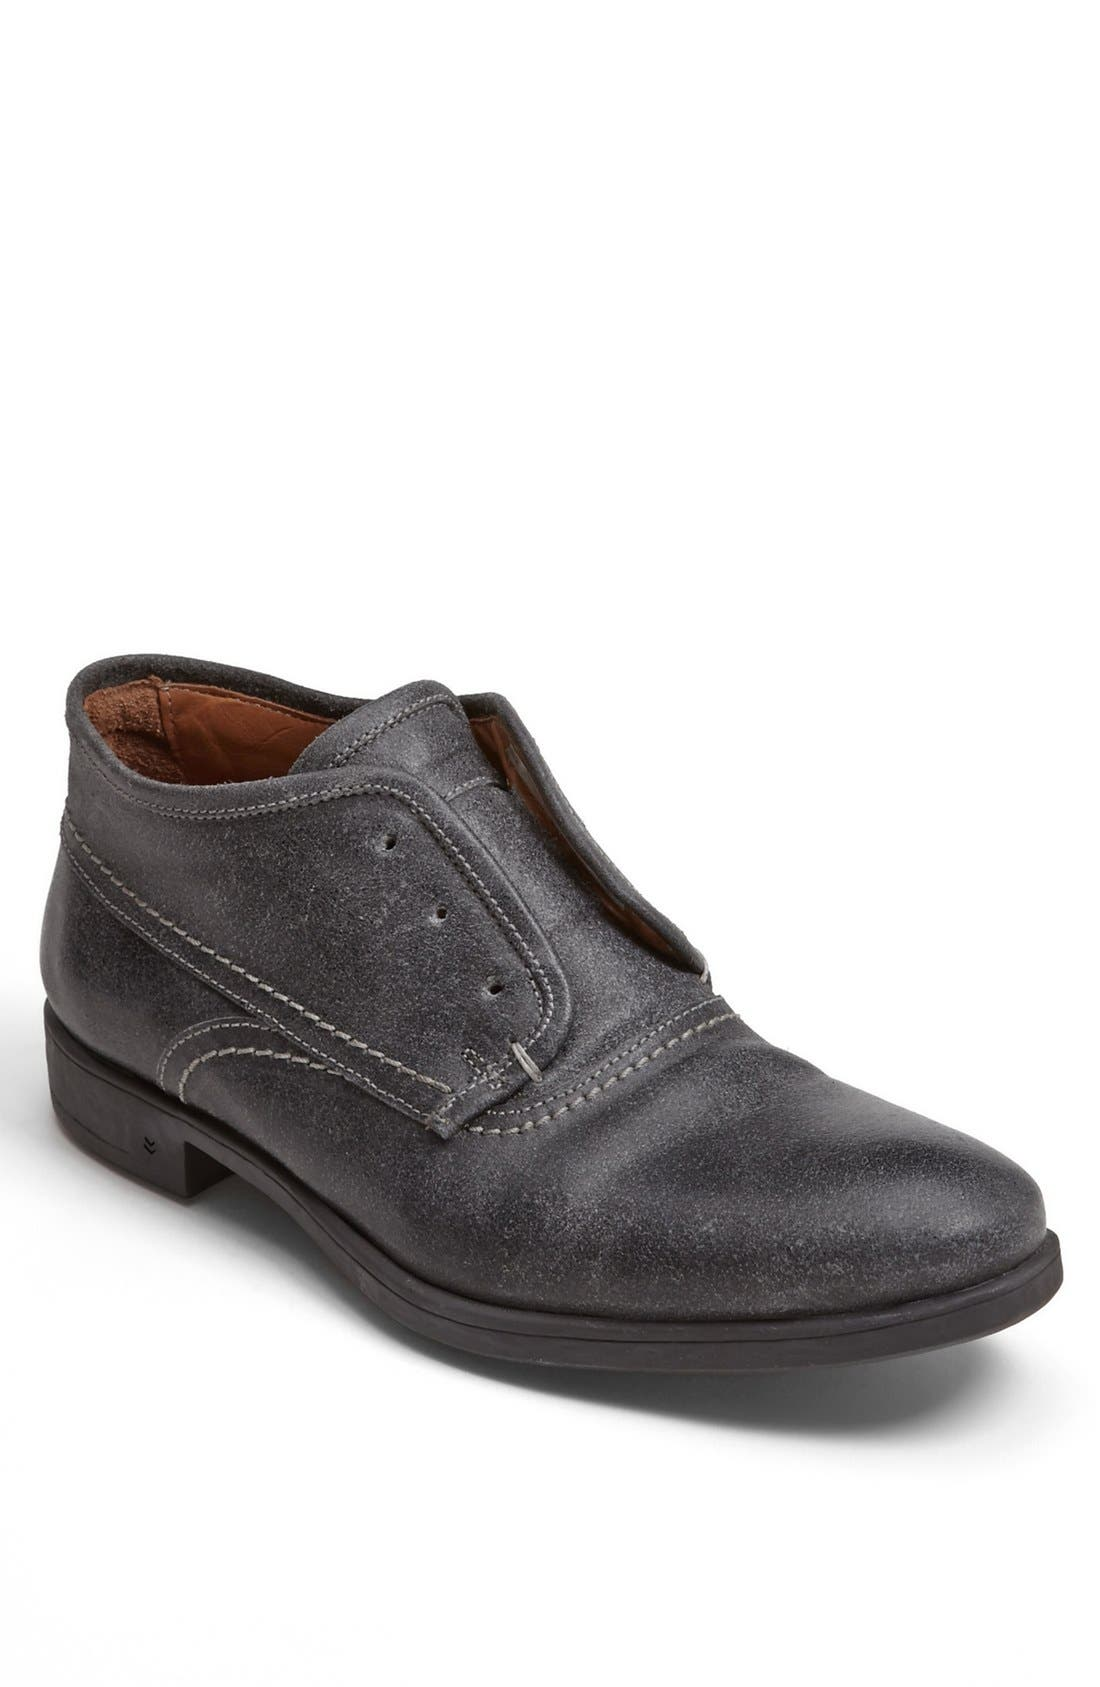 Main Image - John Varvatos Collection 'Dylan' Laceless Chukka Boot